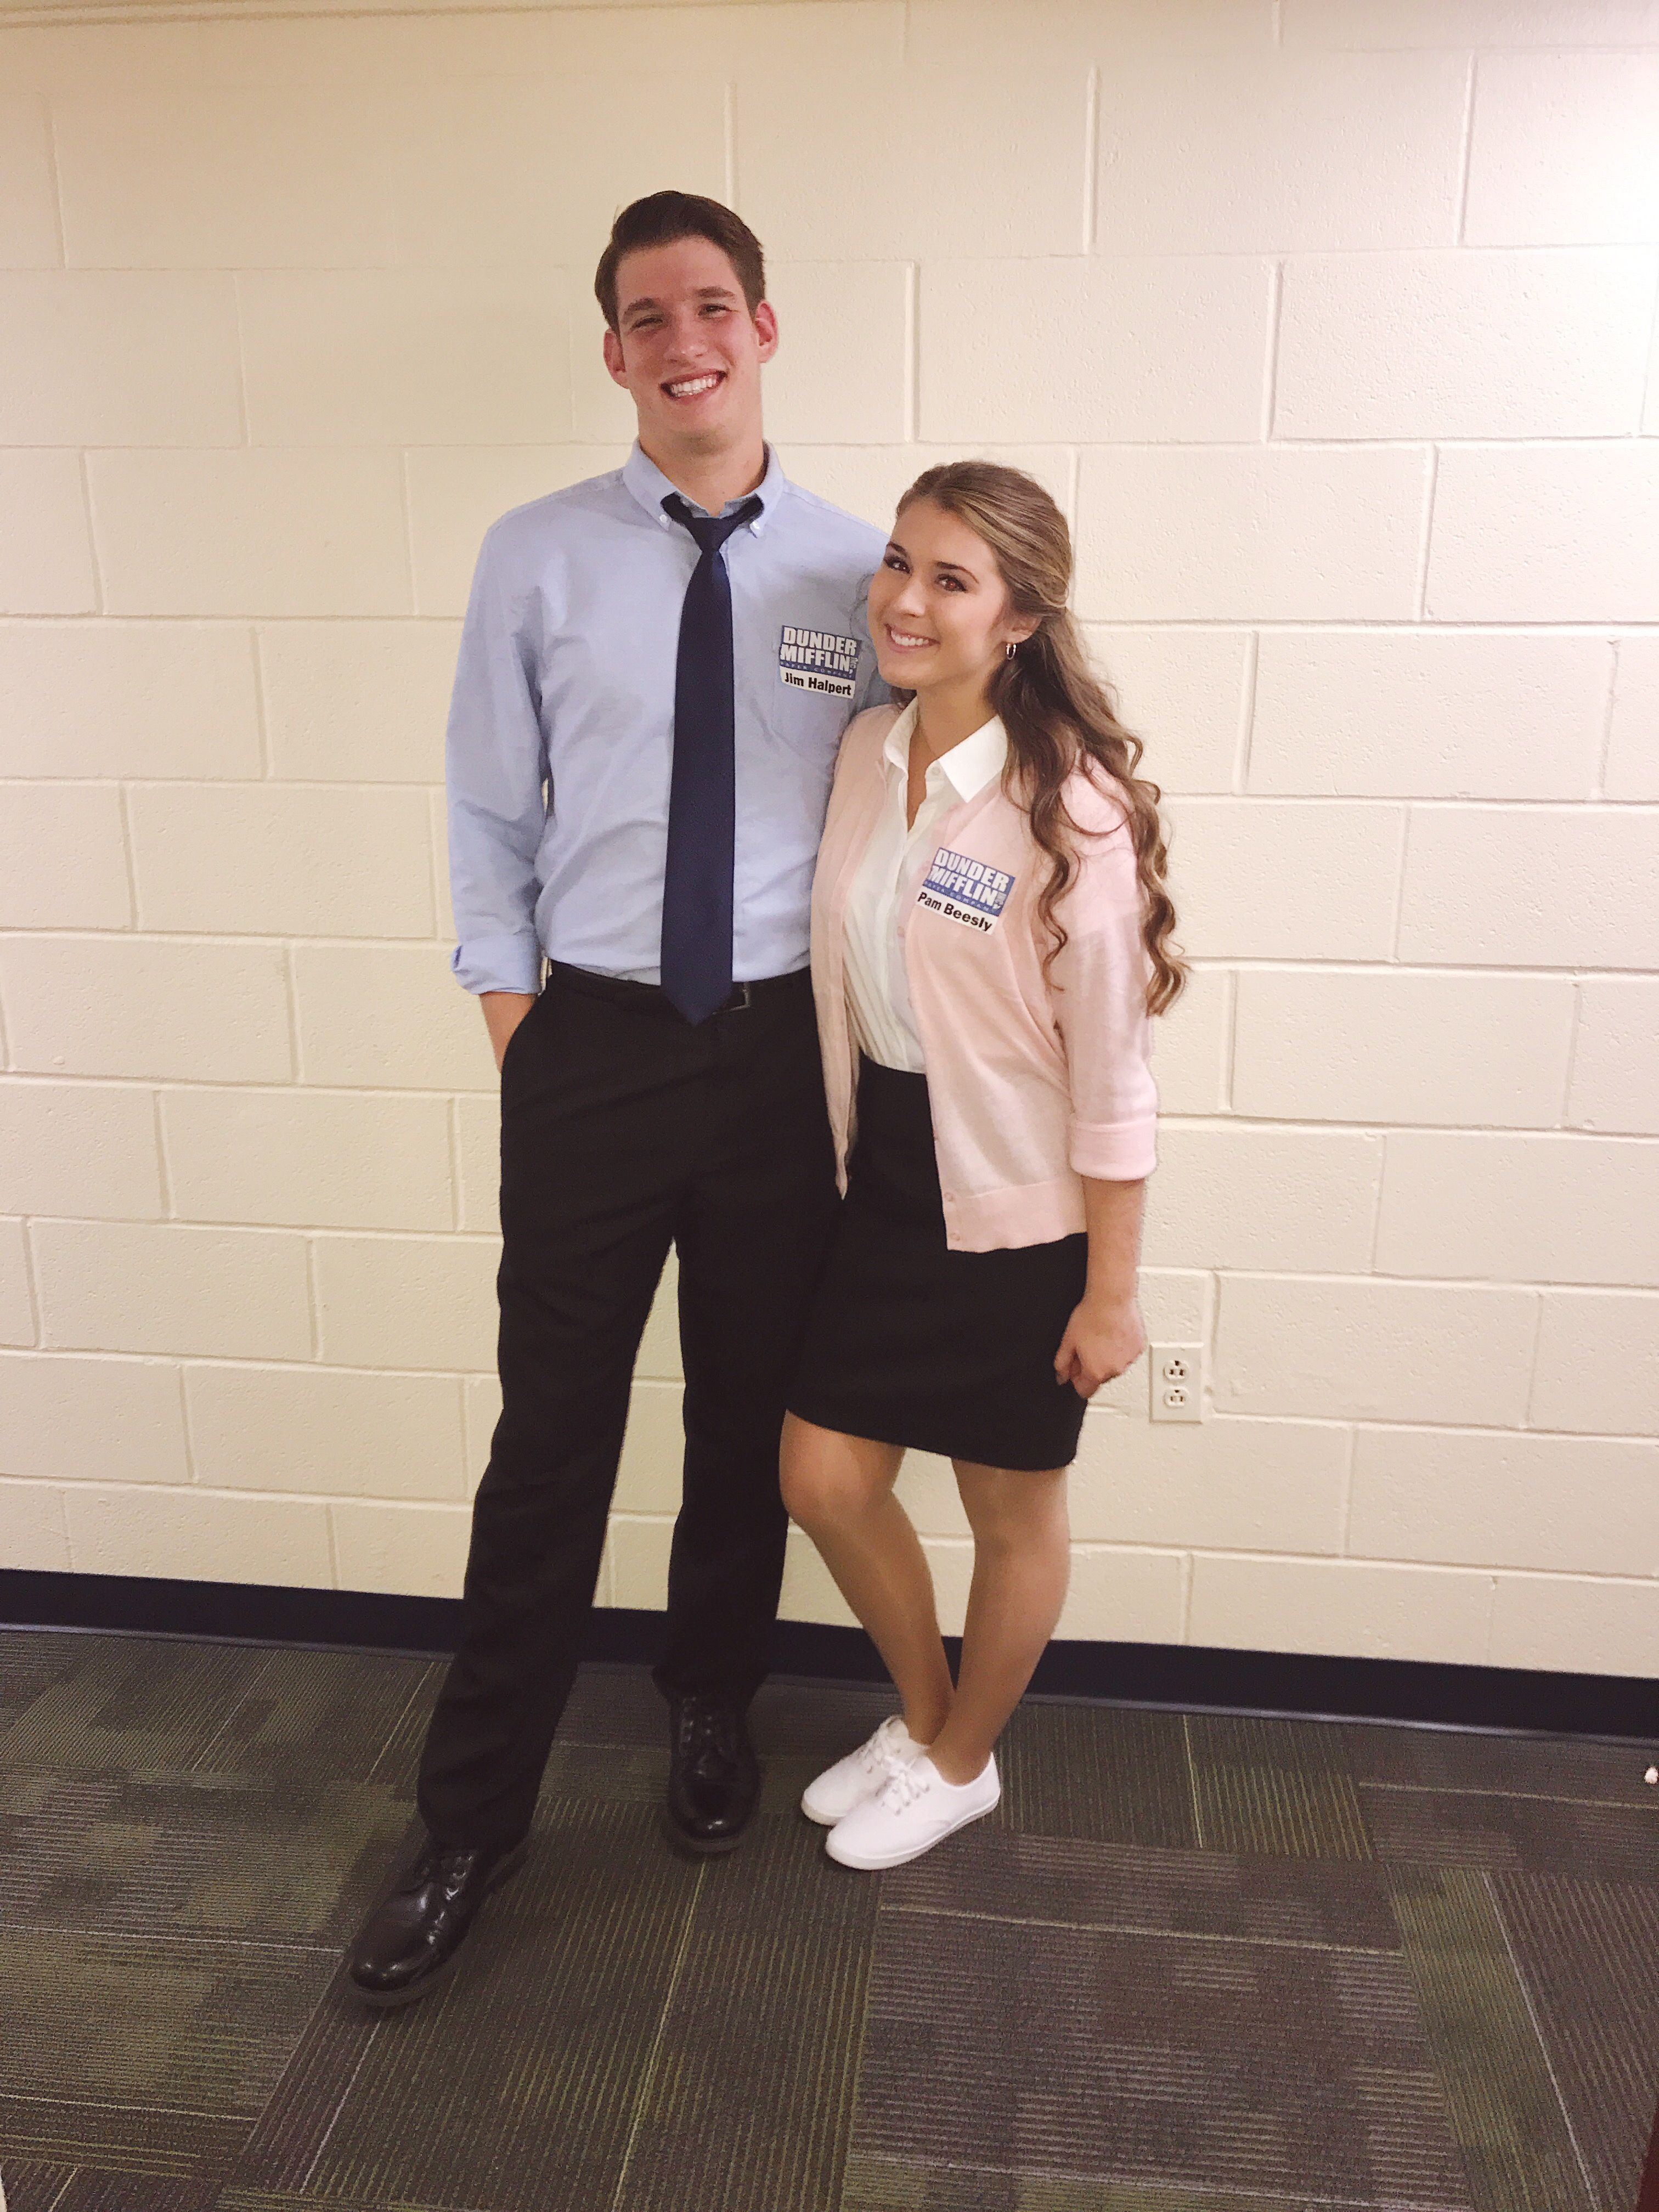 Jim Halpert And Pam Beesly Costume The Office Costumes Couples Costu Cool Couple Halloween Costumes Halloween Costumes To Make Cute Couple Halloween Costumes